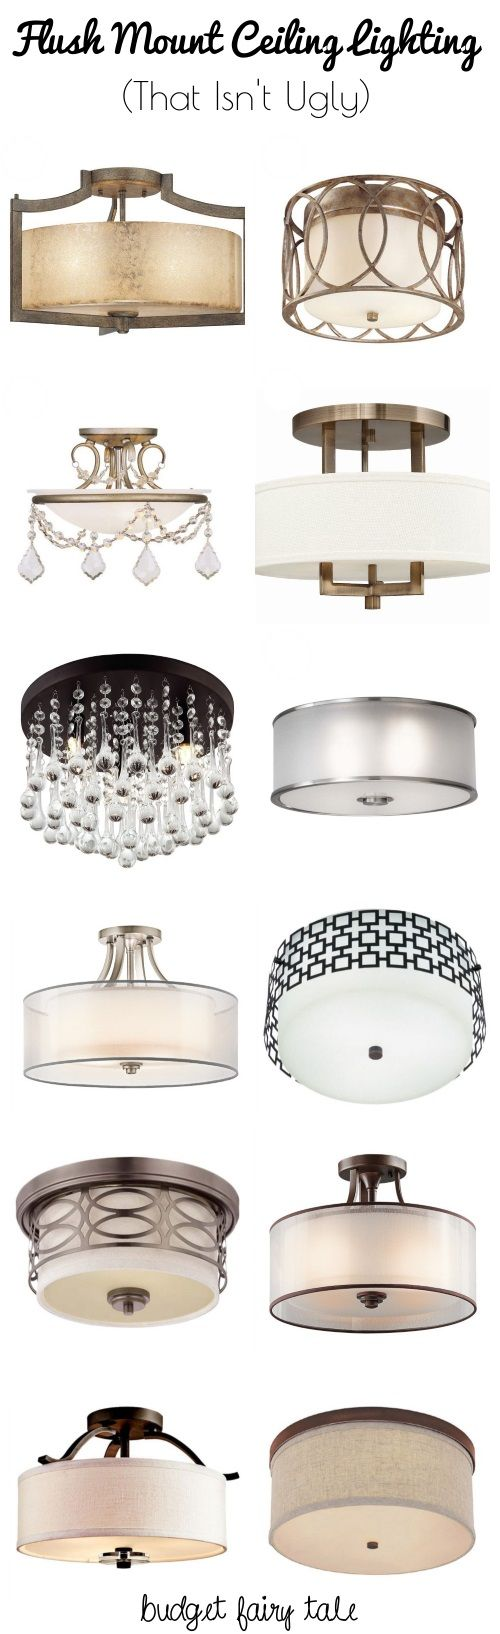 lighting overhead kitchen lighting best images about LIGHTING on Pinterest Polished nickel Glass pendant light and Pendant lamps